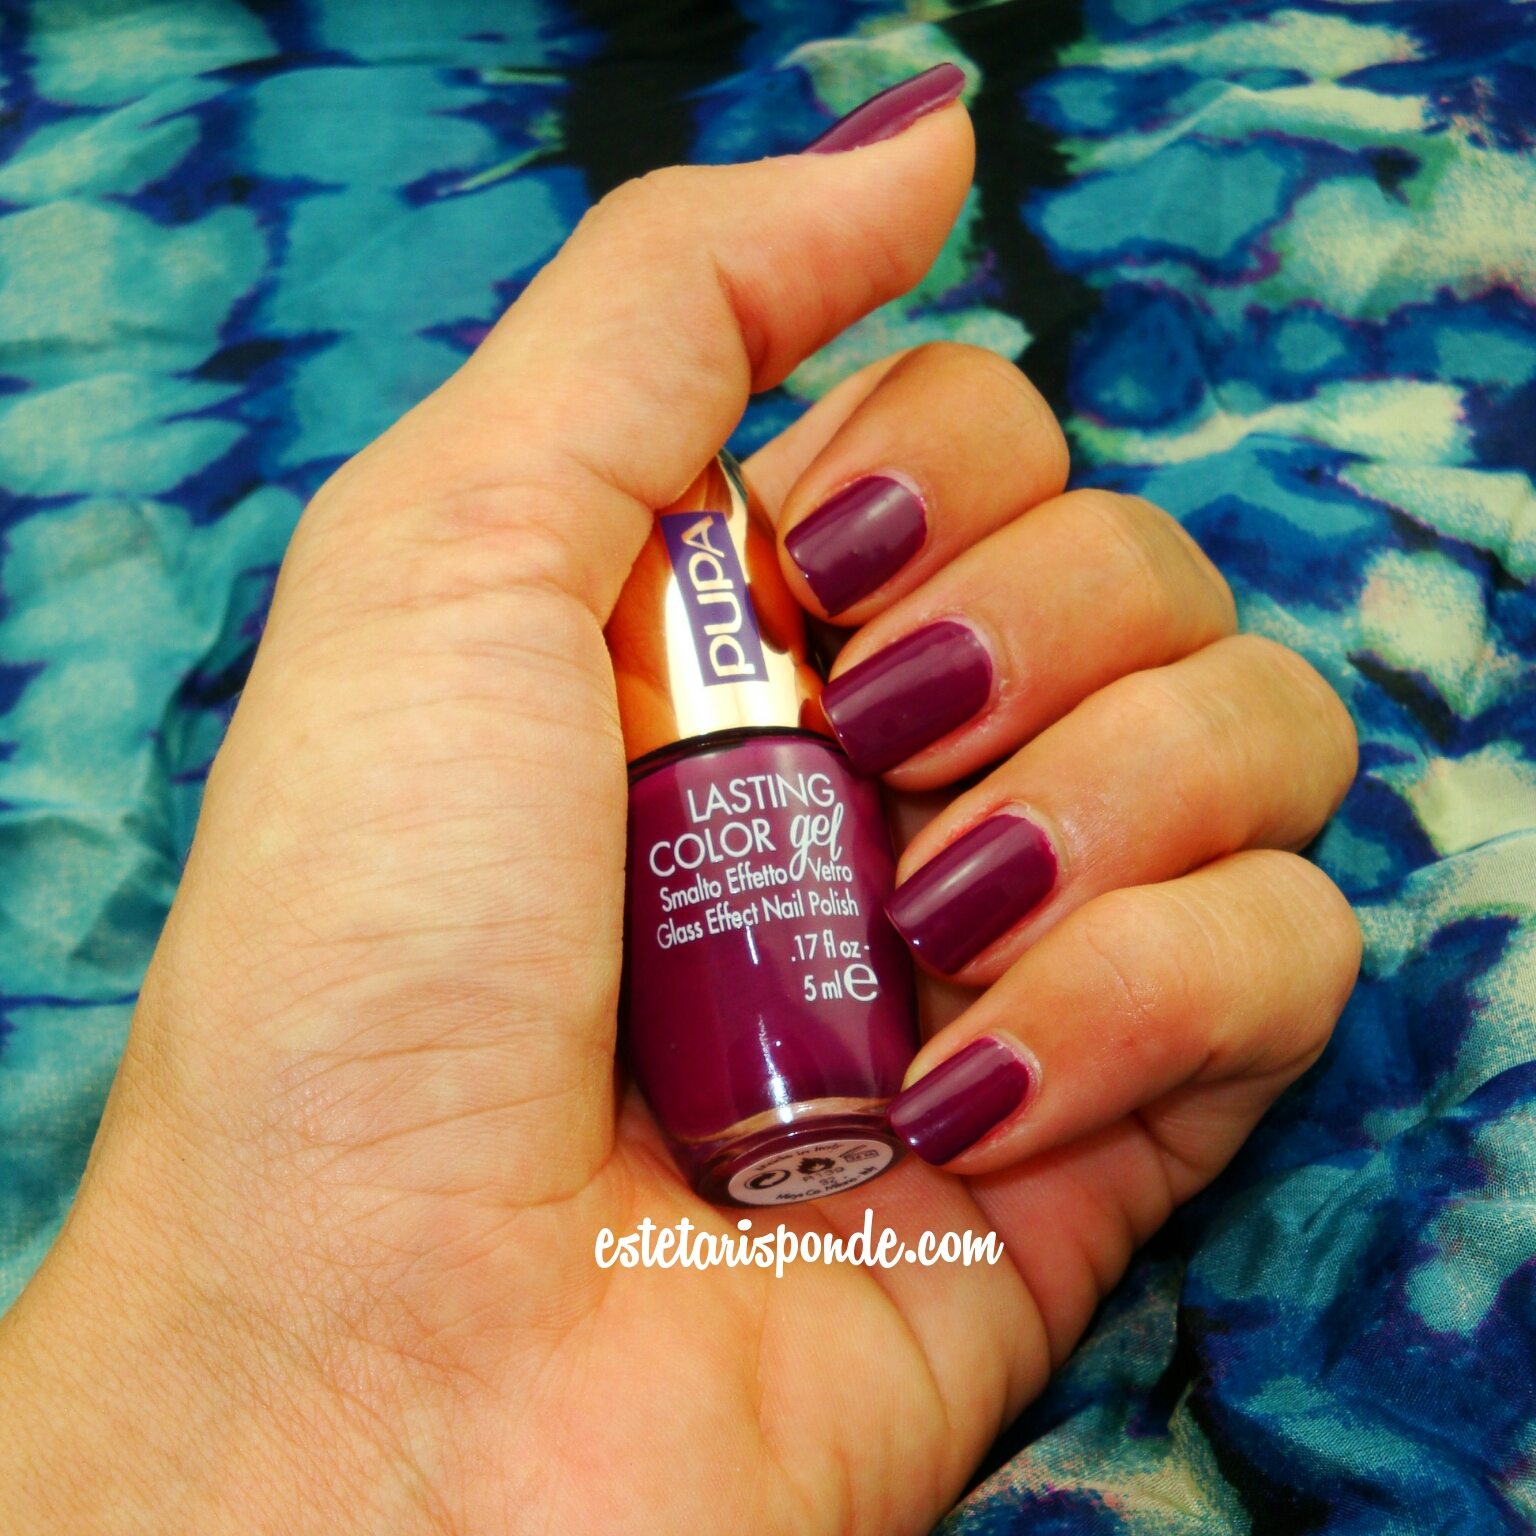 PUPA Paris Experience lasting color GEL Velvety Fuchsia 092 - swatches